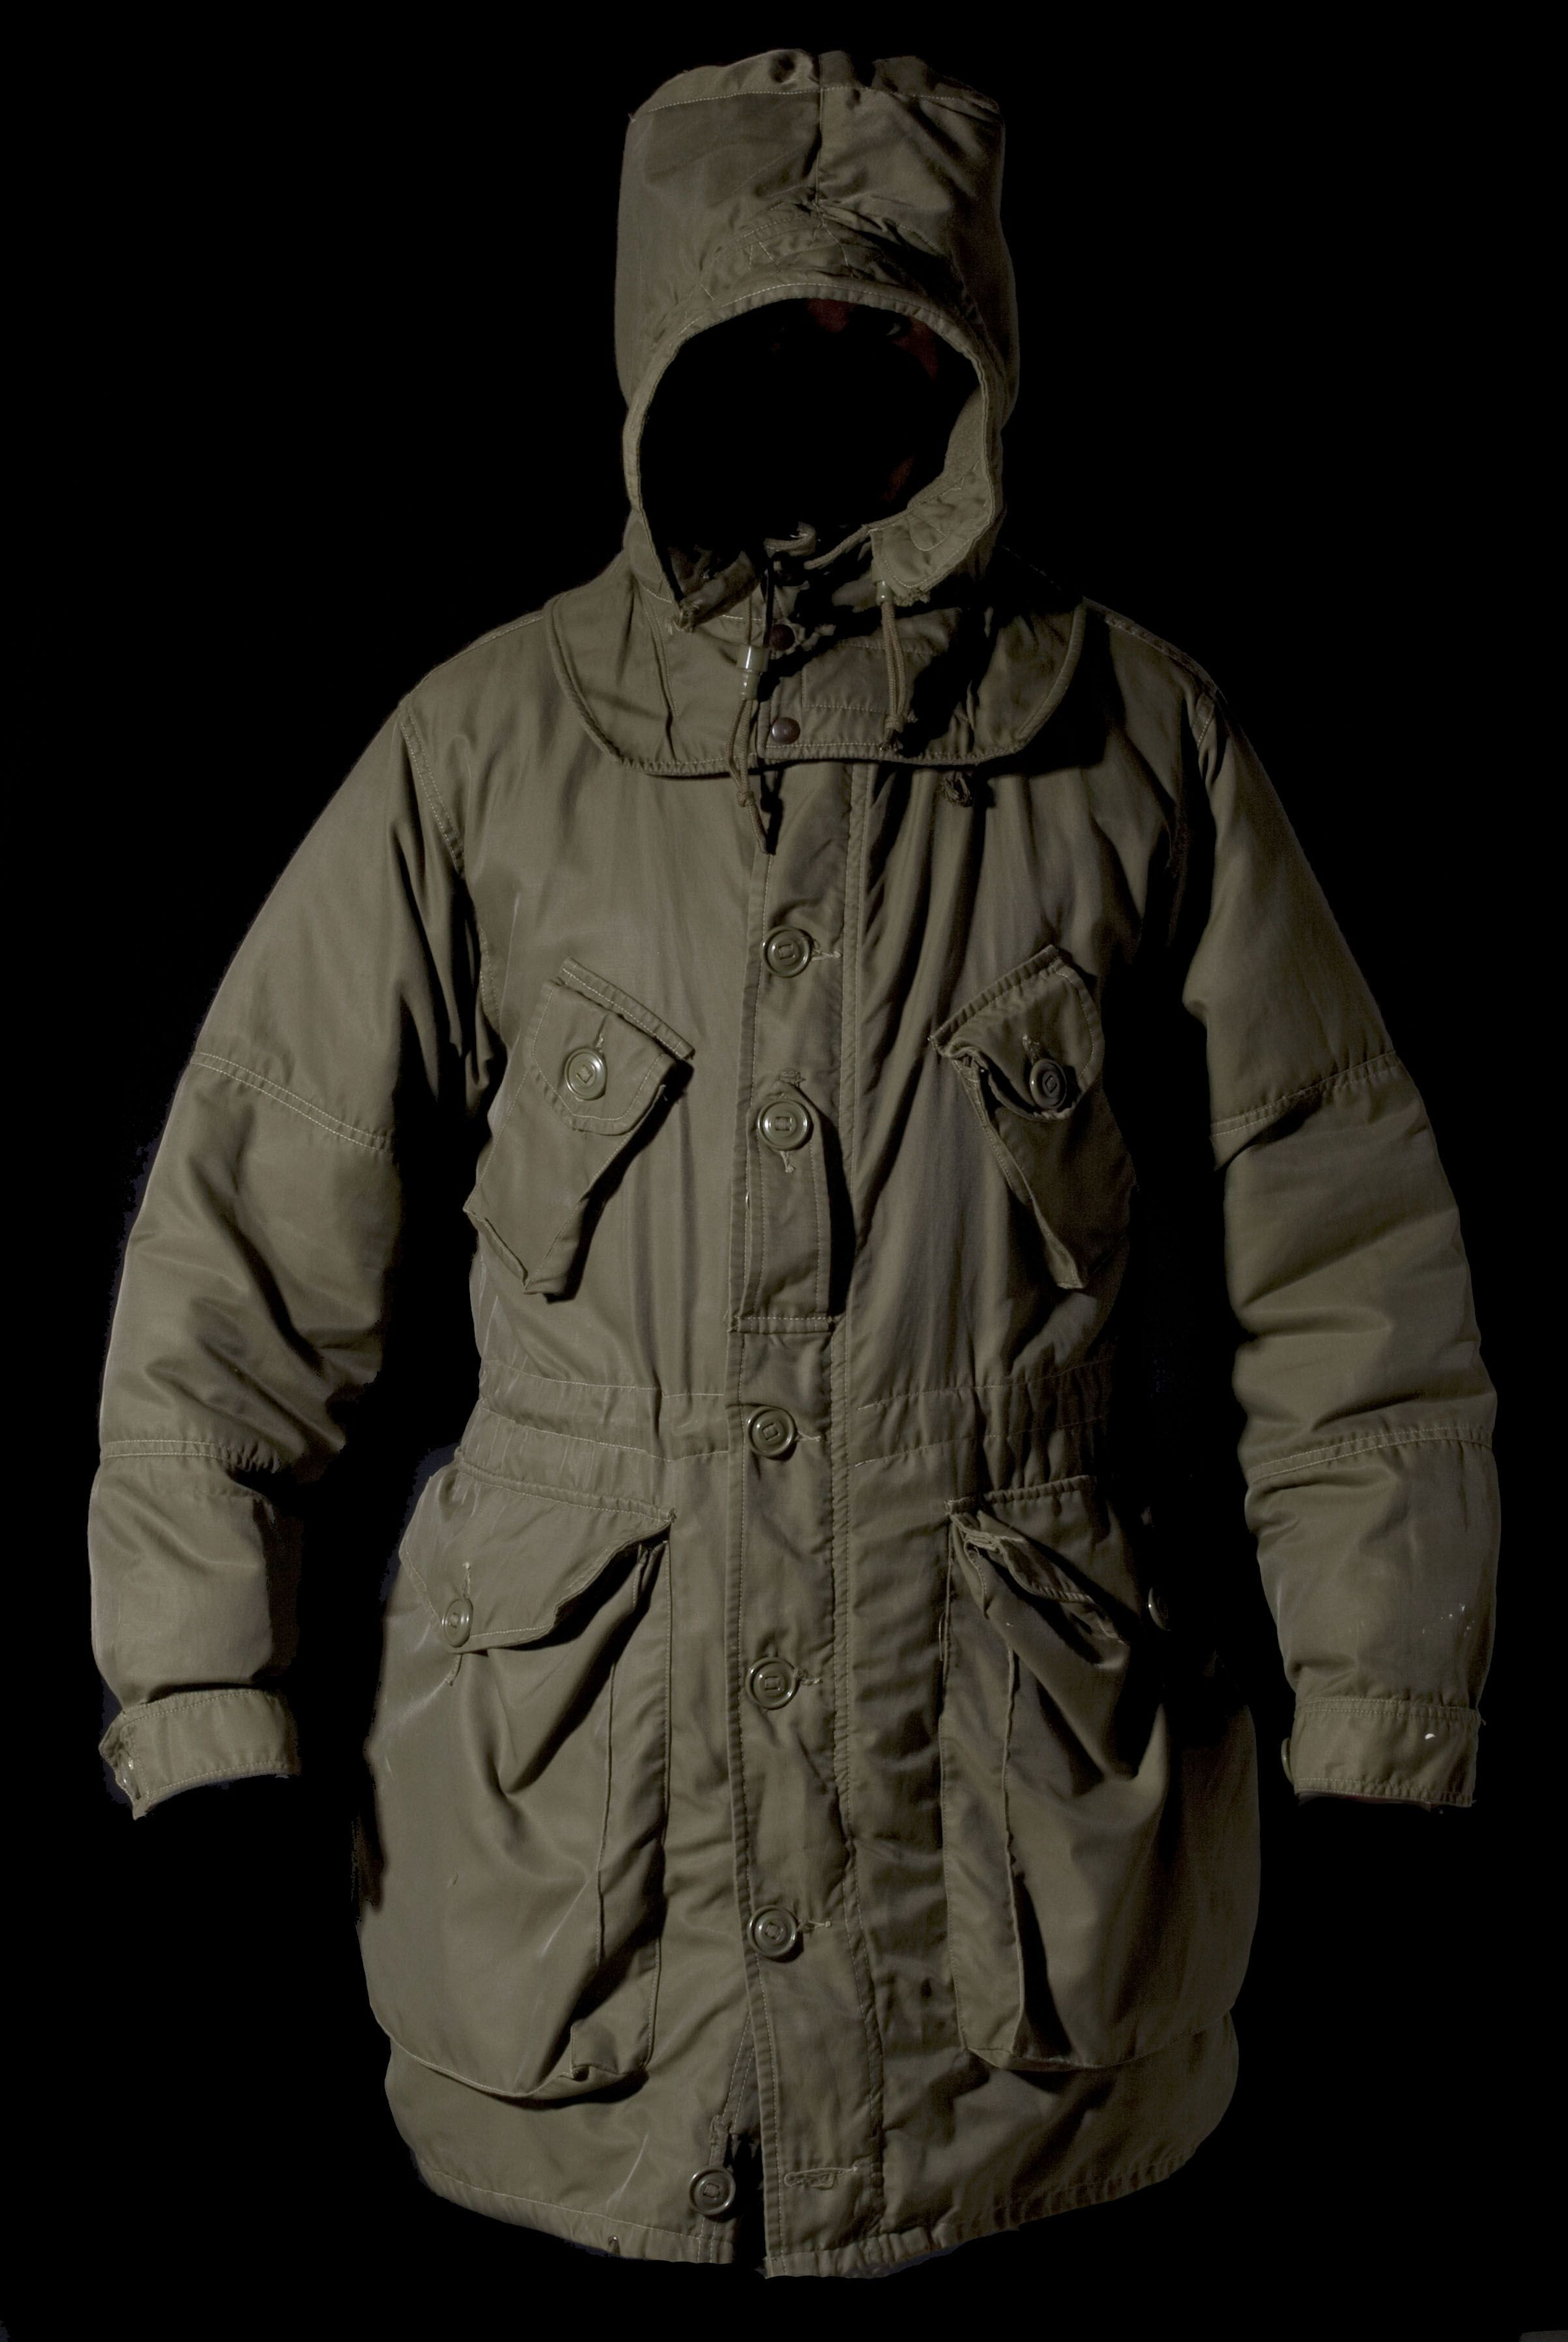 a48738d5cf6ec Canadian ECW Canadian Parka, Field Jackets, Military Parka, Tactical  Clothing, Cool Jackets